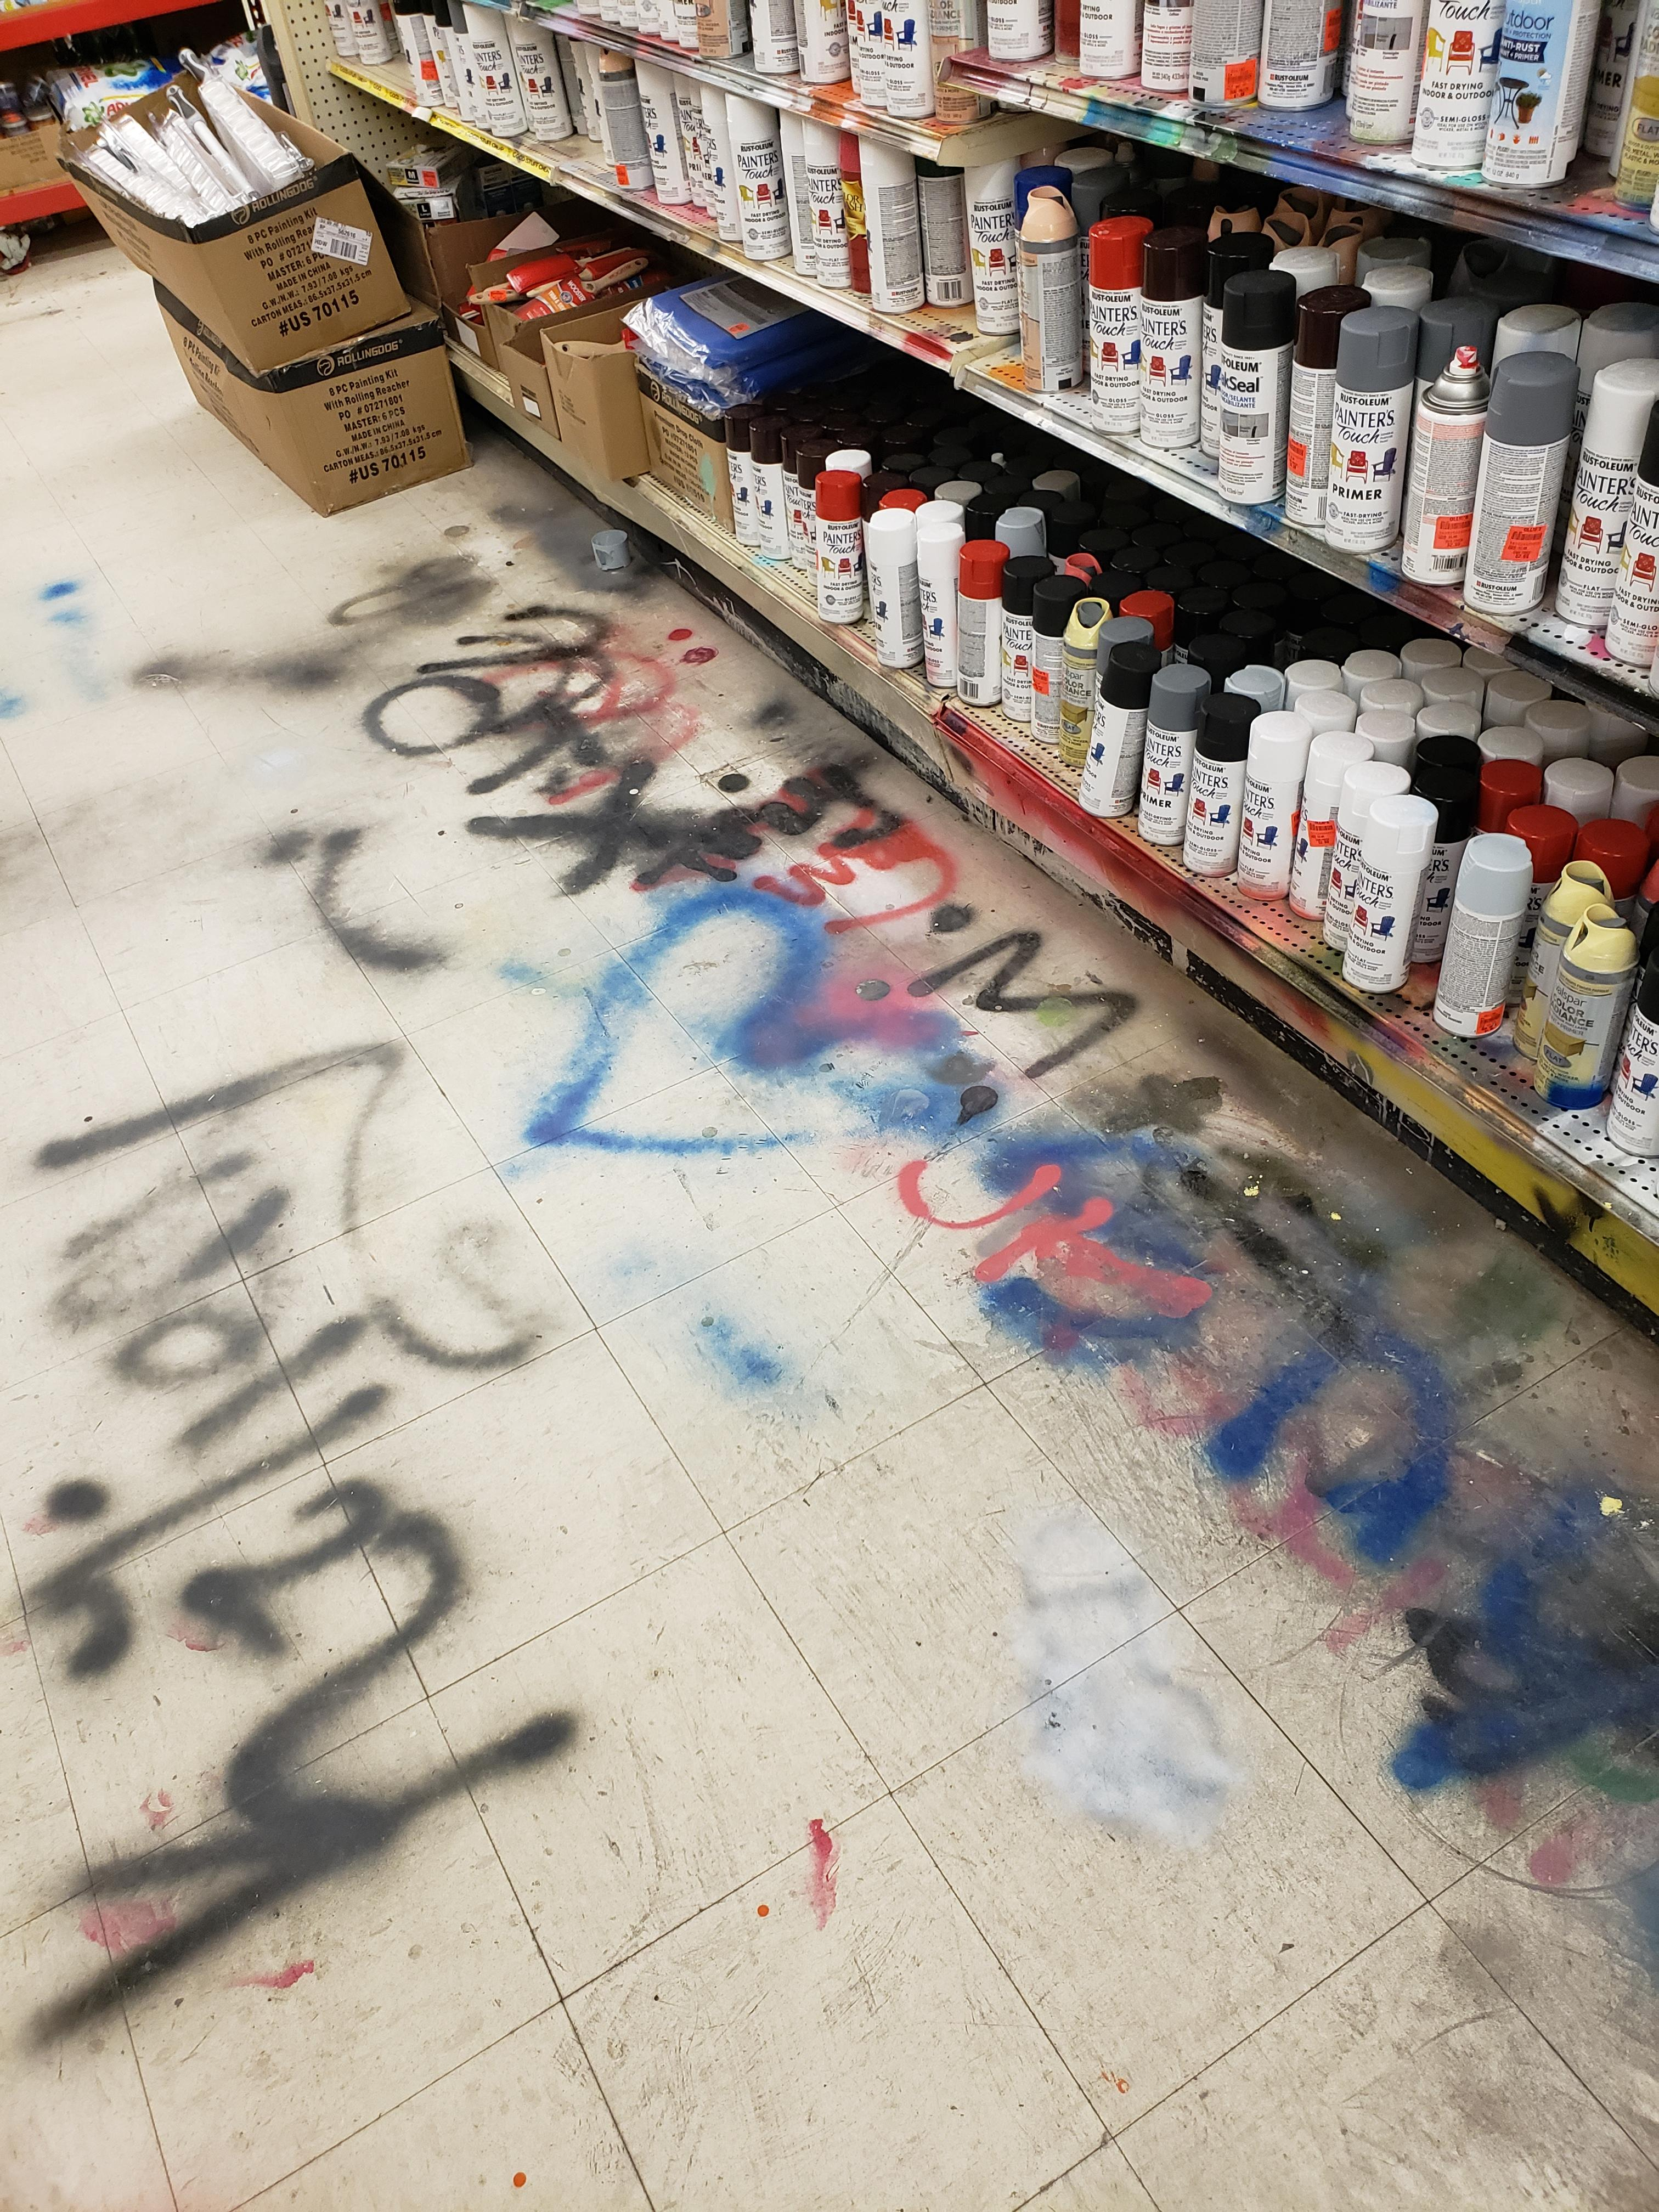 https://old.reddit.com/r/trashy/comments/ba4w7d/people_testing_spray_paint_at_ollies/?st=k158jvu3&sh=4811a3fa